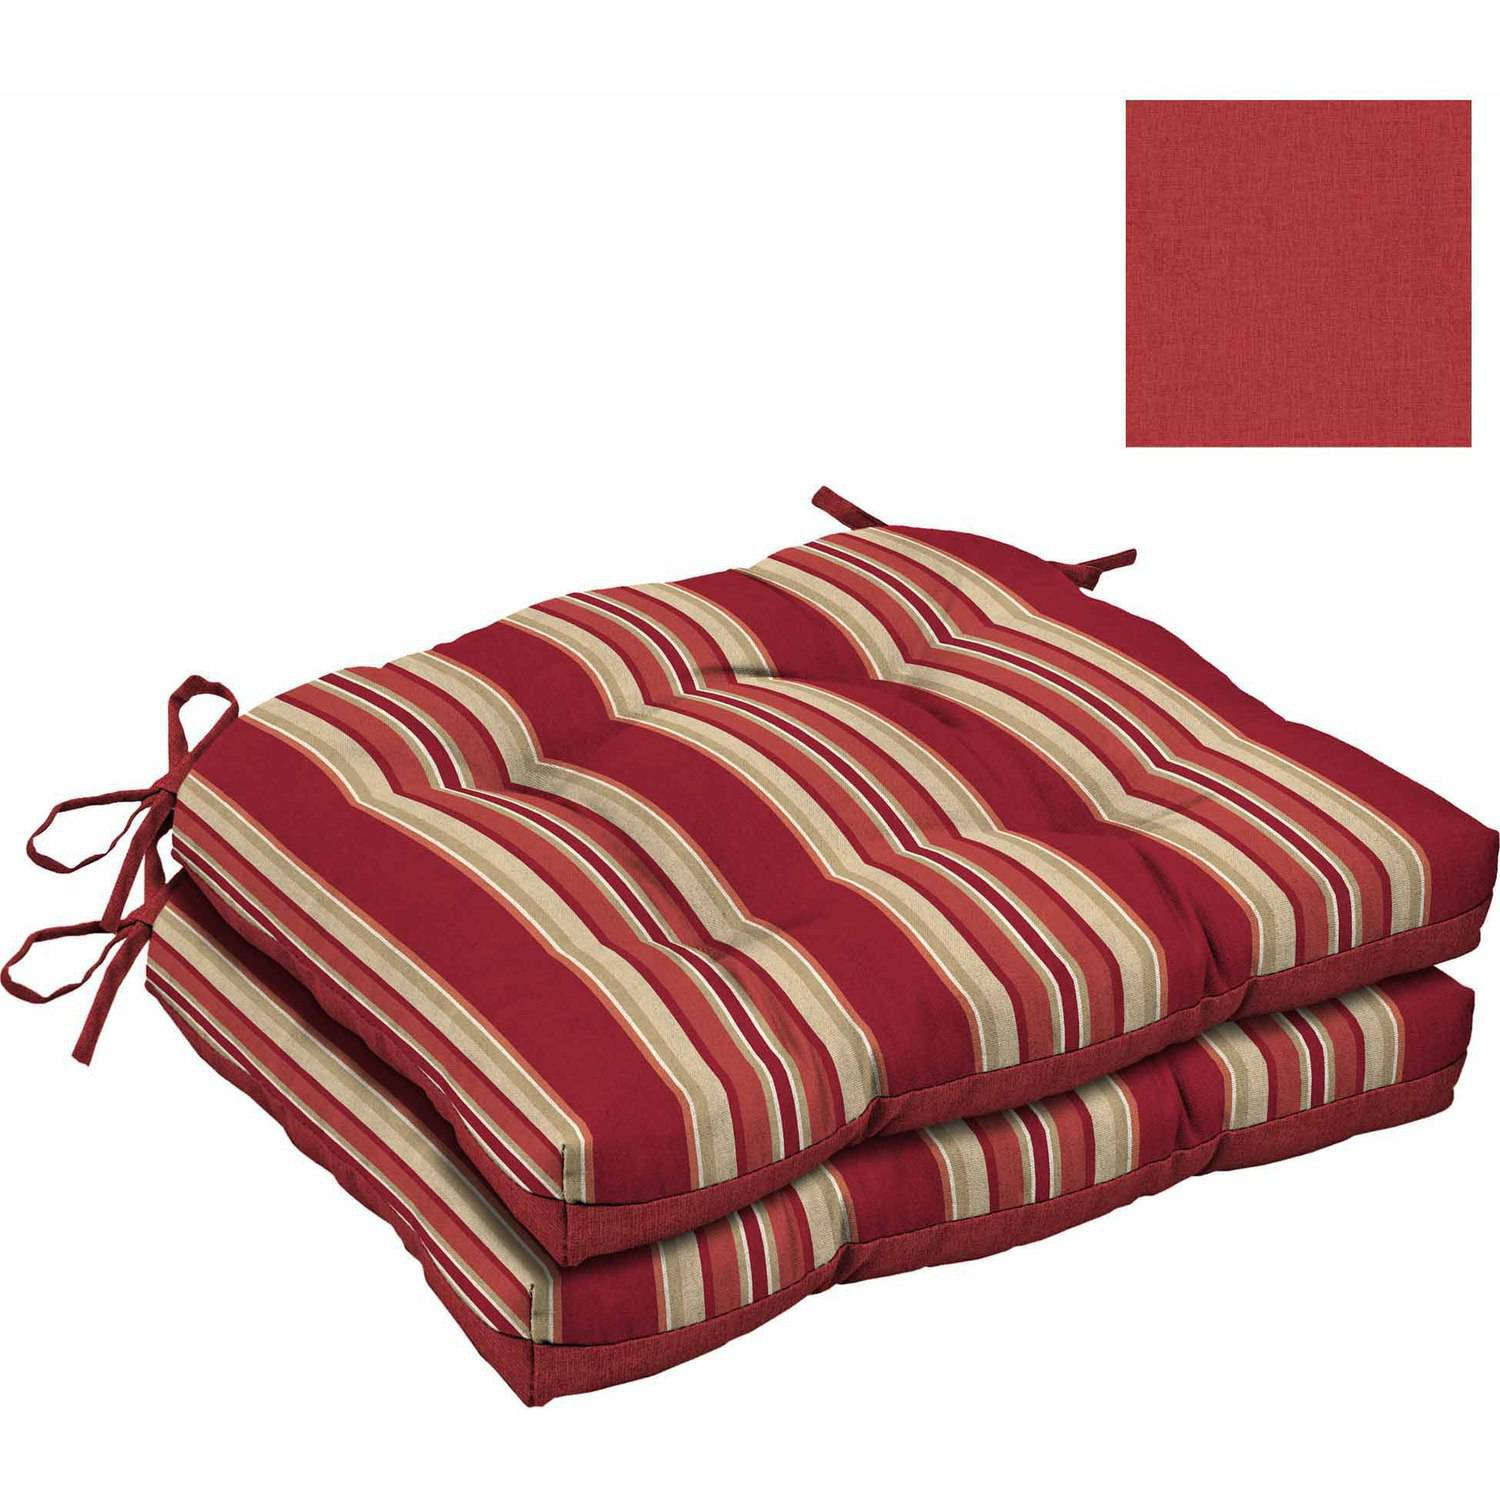 Mainstays Outdoor Wicker Chair Cushions Red Stripe Set of 2